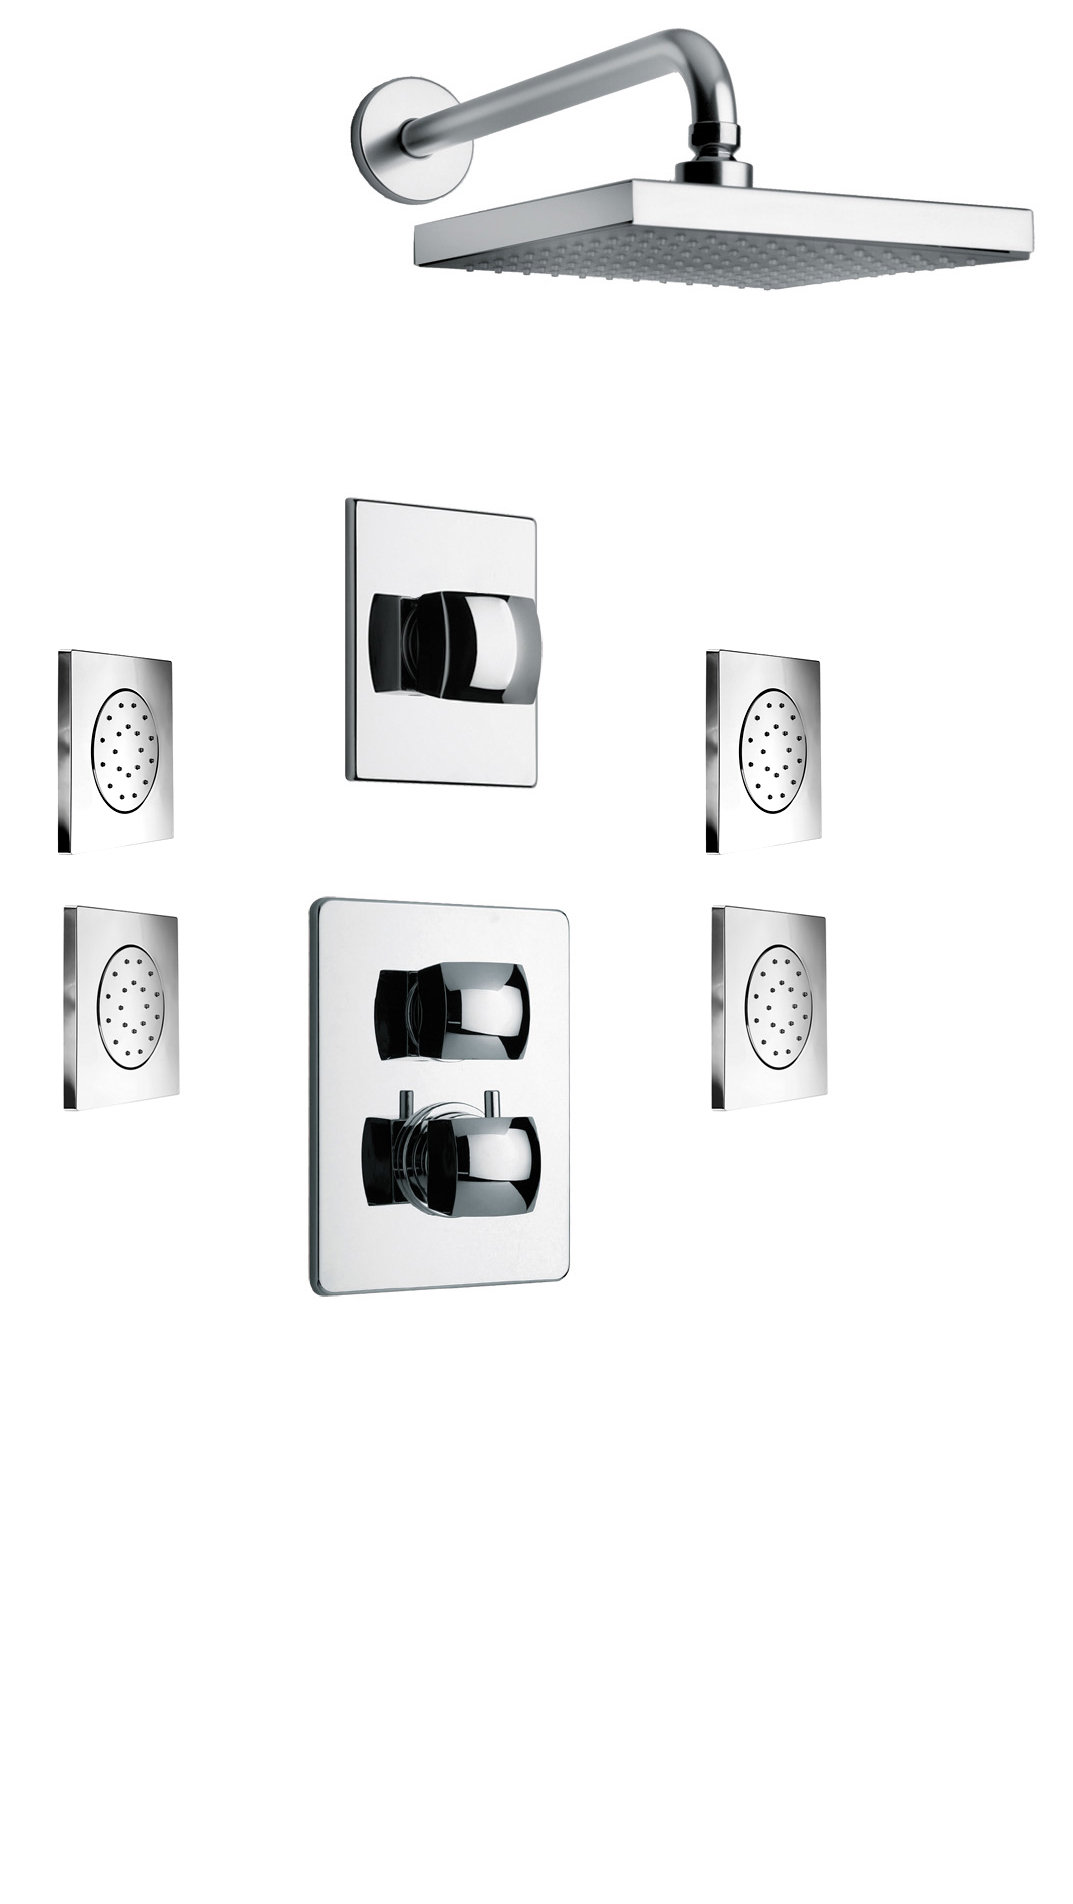 "Thermostatic Shower With 3/4"" Ceramic Disc Volume Control, 3-Way Diverter and 4 Concealed Body Jets in Chrome"